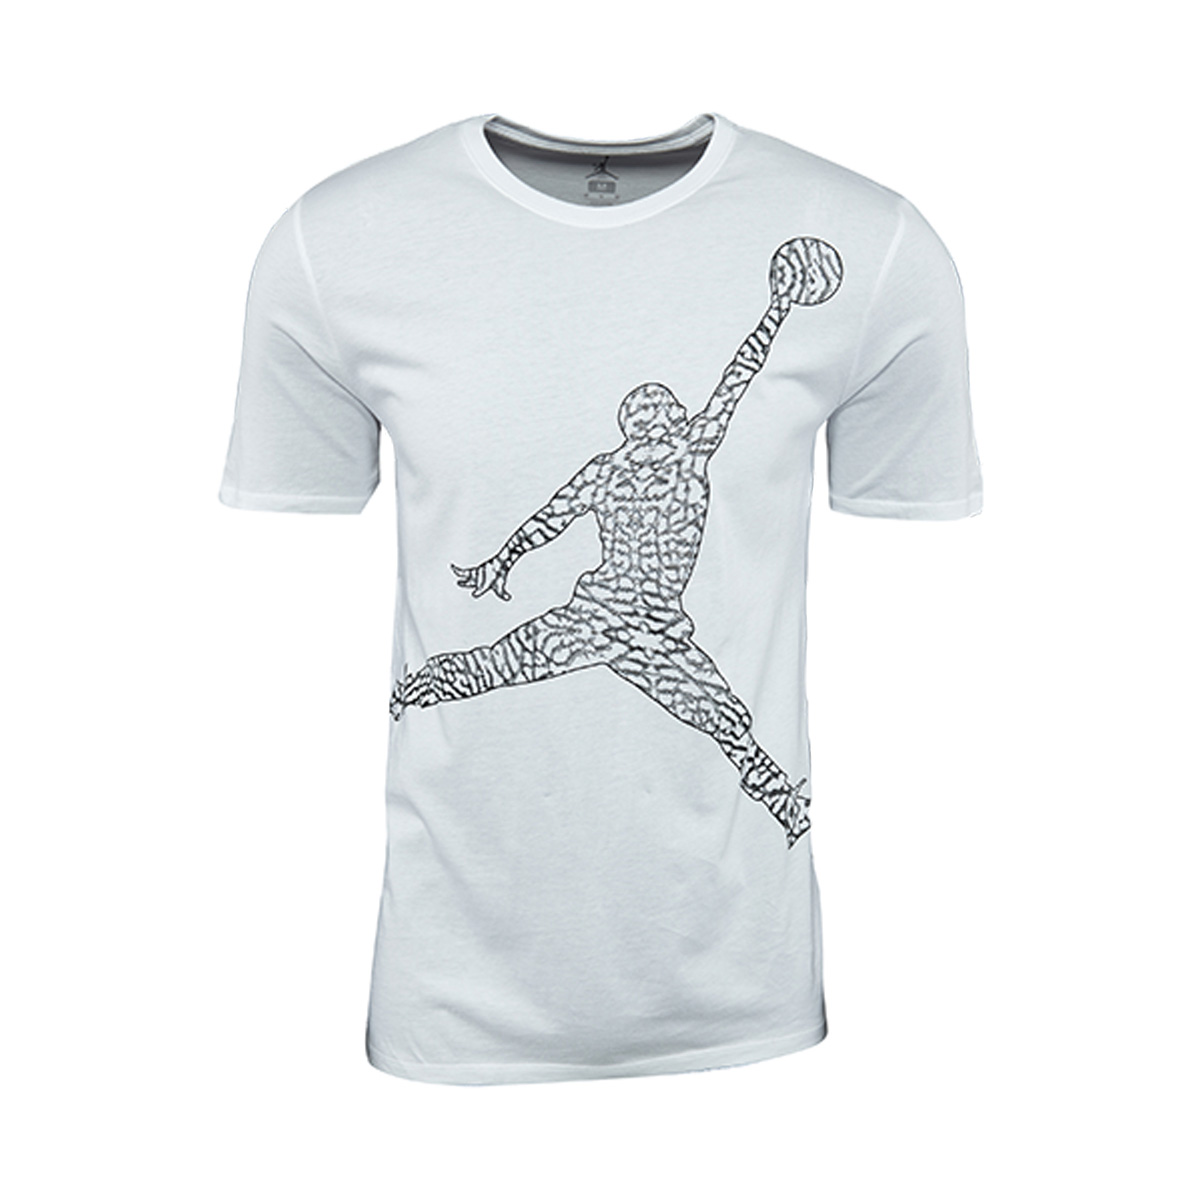 446edee7f01 NIKE AIR JORDAN JUMPMAN CLOUD ELE T-SHIRT WHITE 823329-100 - MyCraze